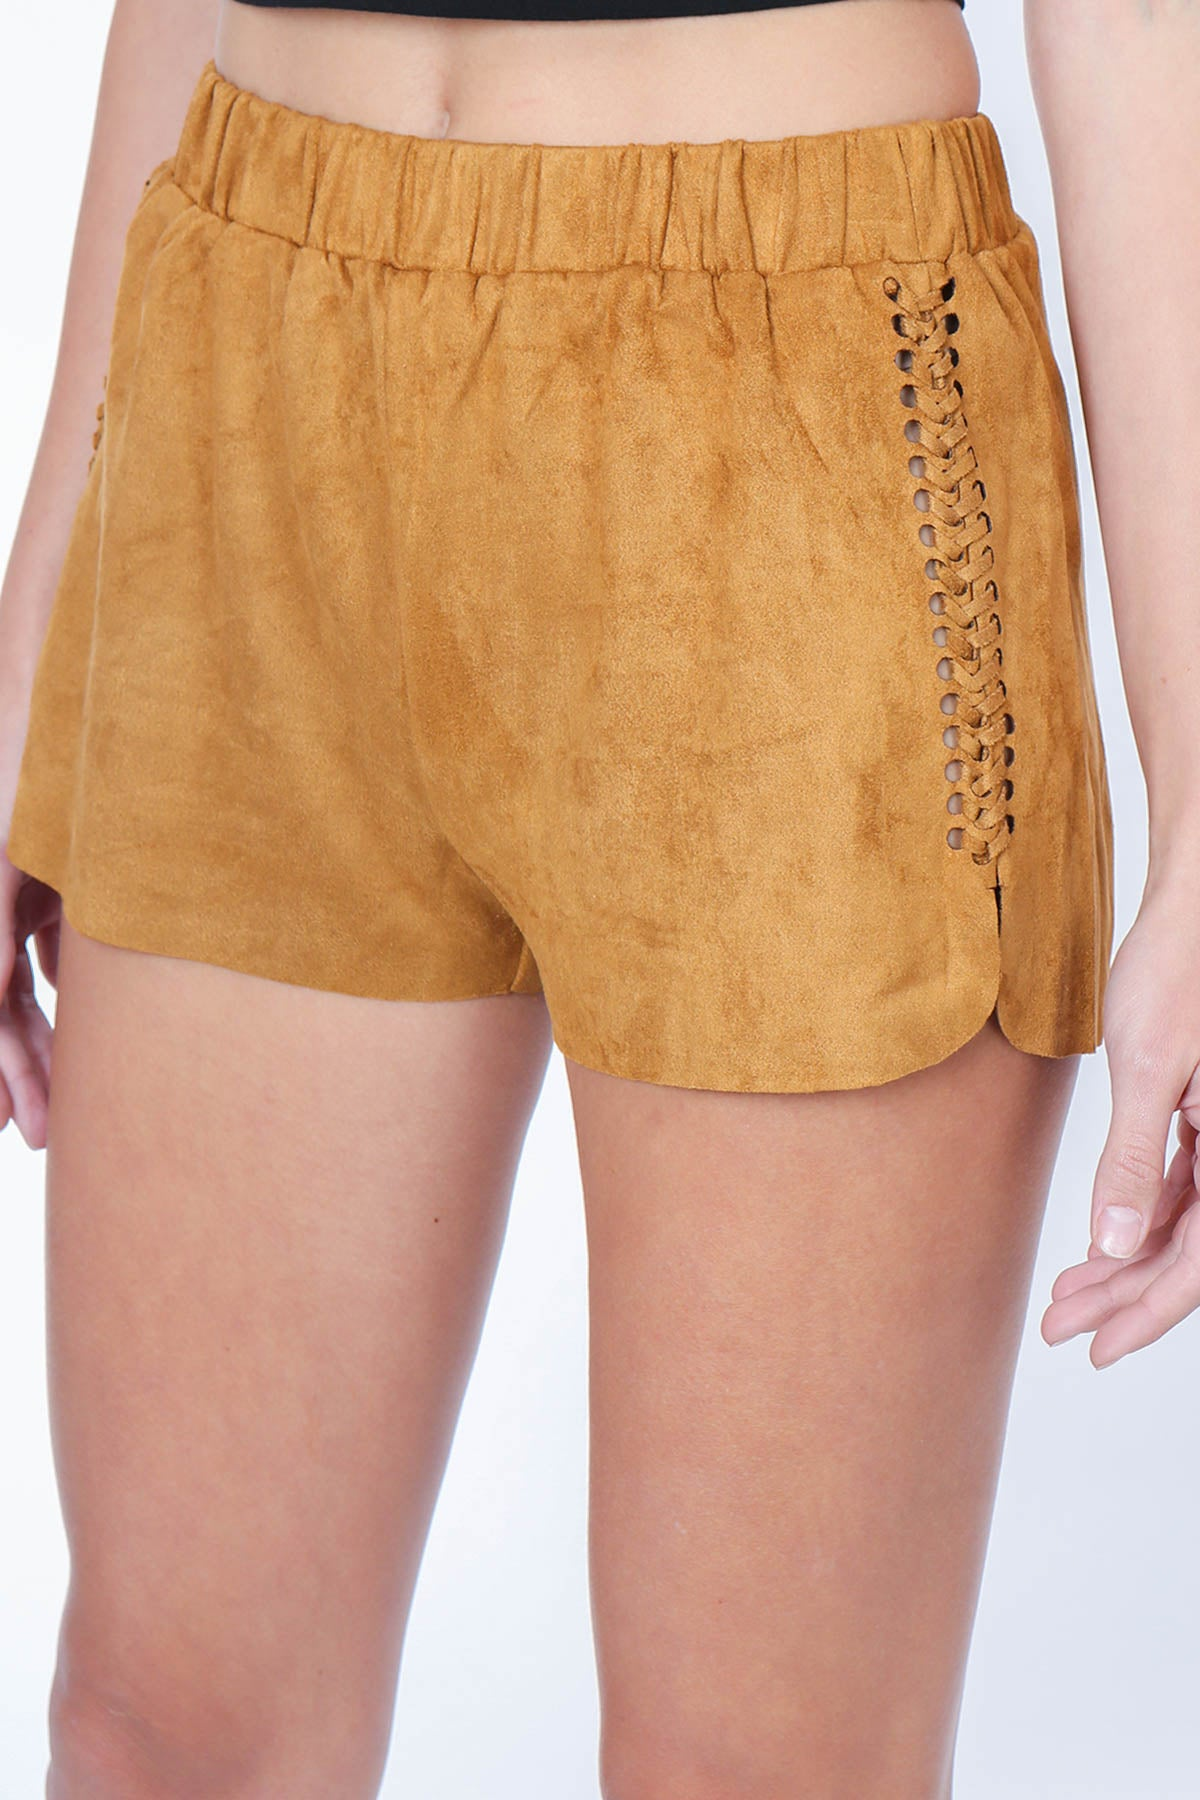 Aynara Fashion Brielle Suede Short